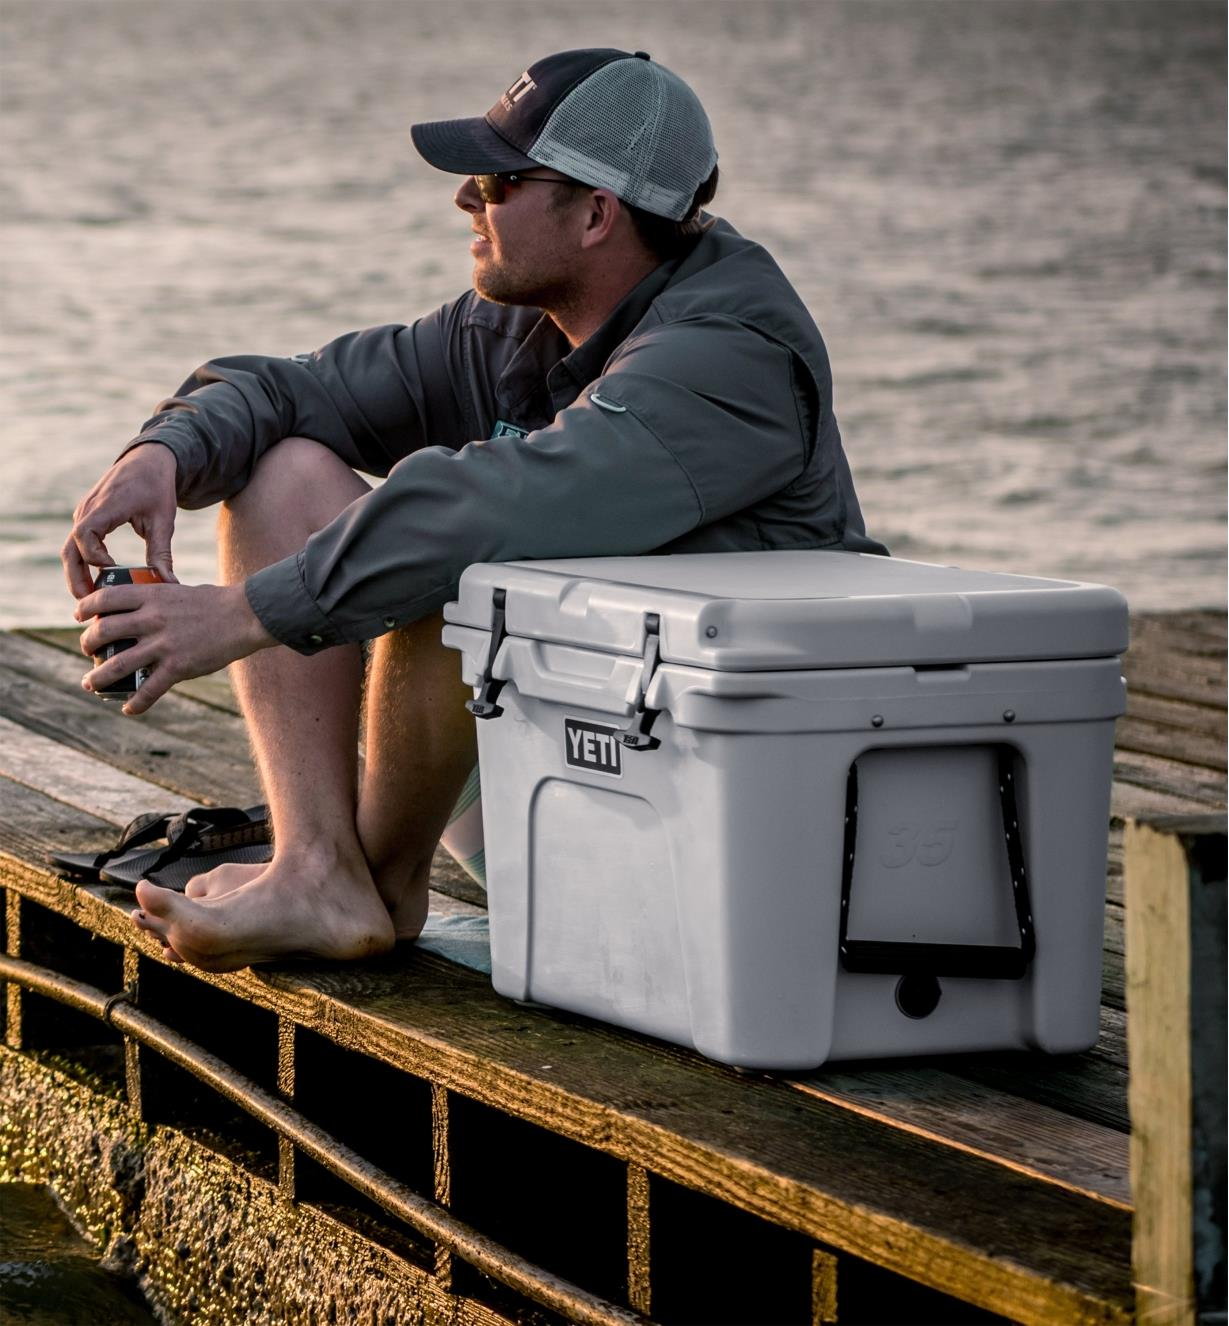 A man sitting on a dock beside a Yeti cooler